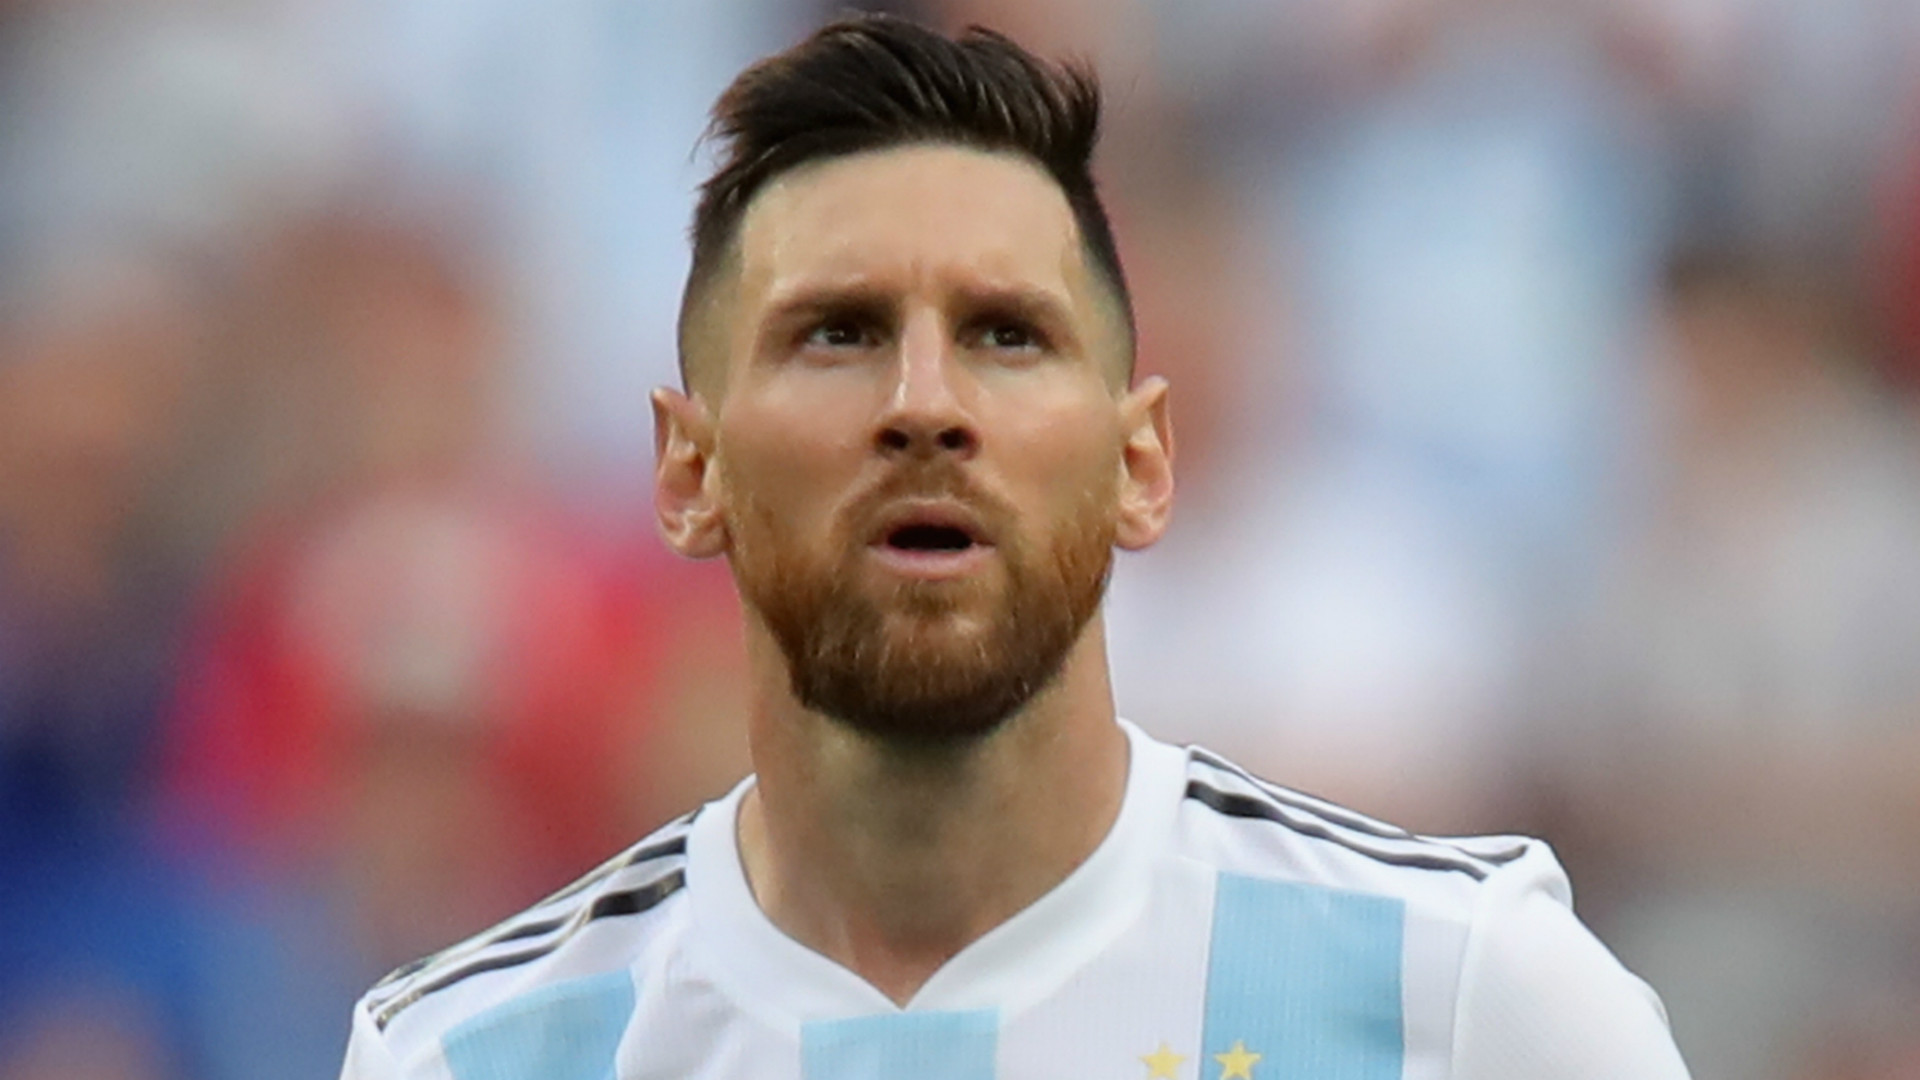 'He is very tired' - Menotti anxious  about Messi ahead of Argentina friendlies